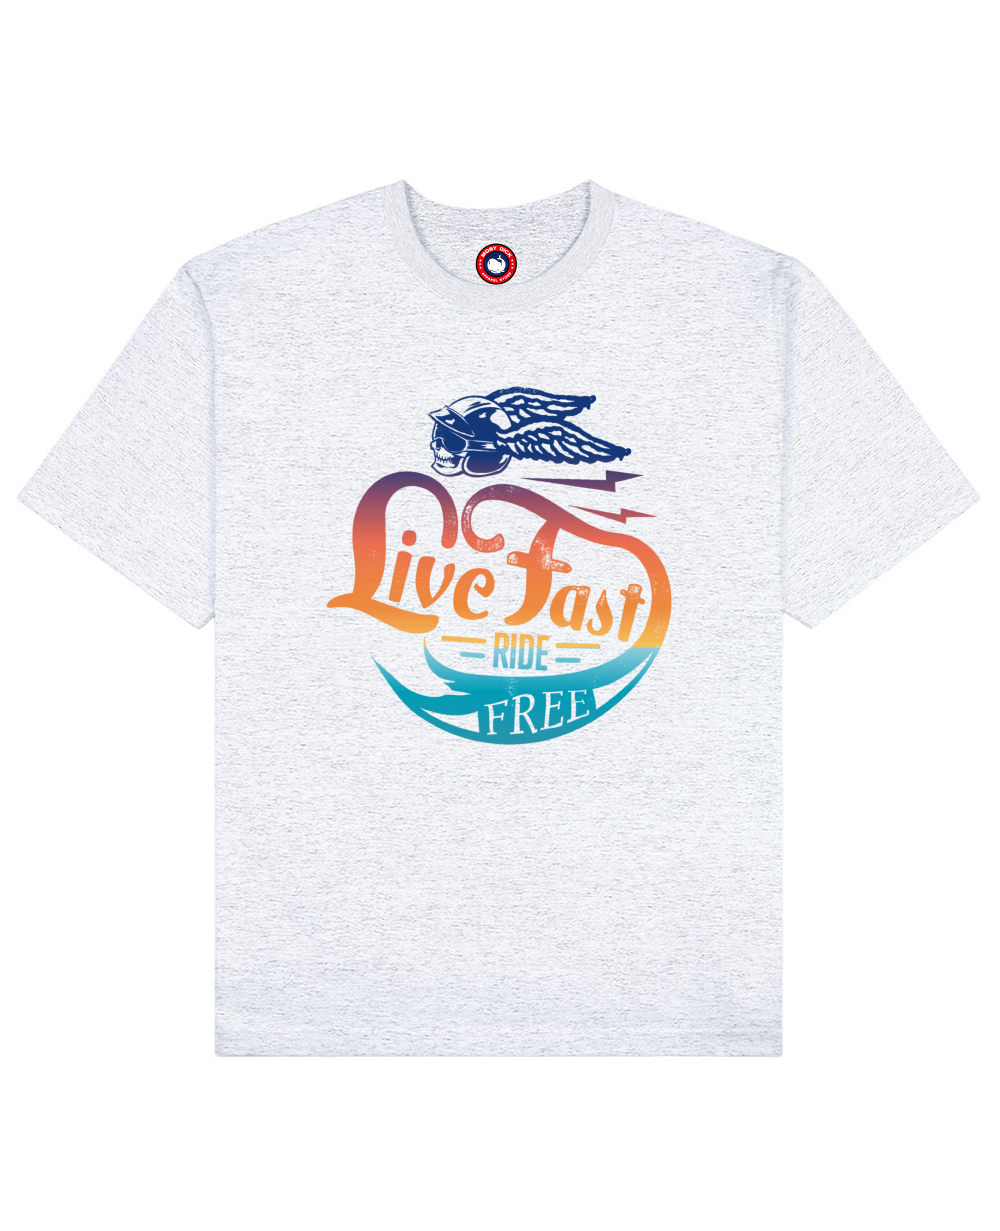 Live Fast Ride Free Print T-Shirt in Light Gray - T-Shirts - MOBY DICK - BRANMA